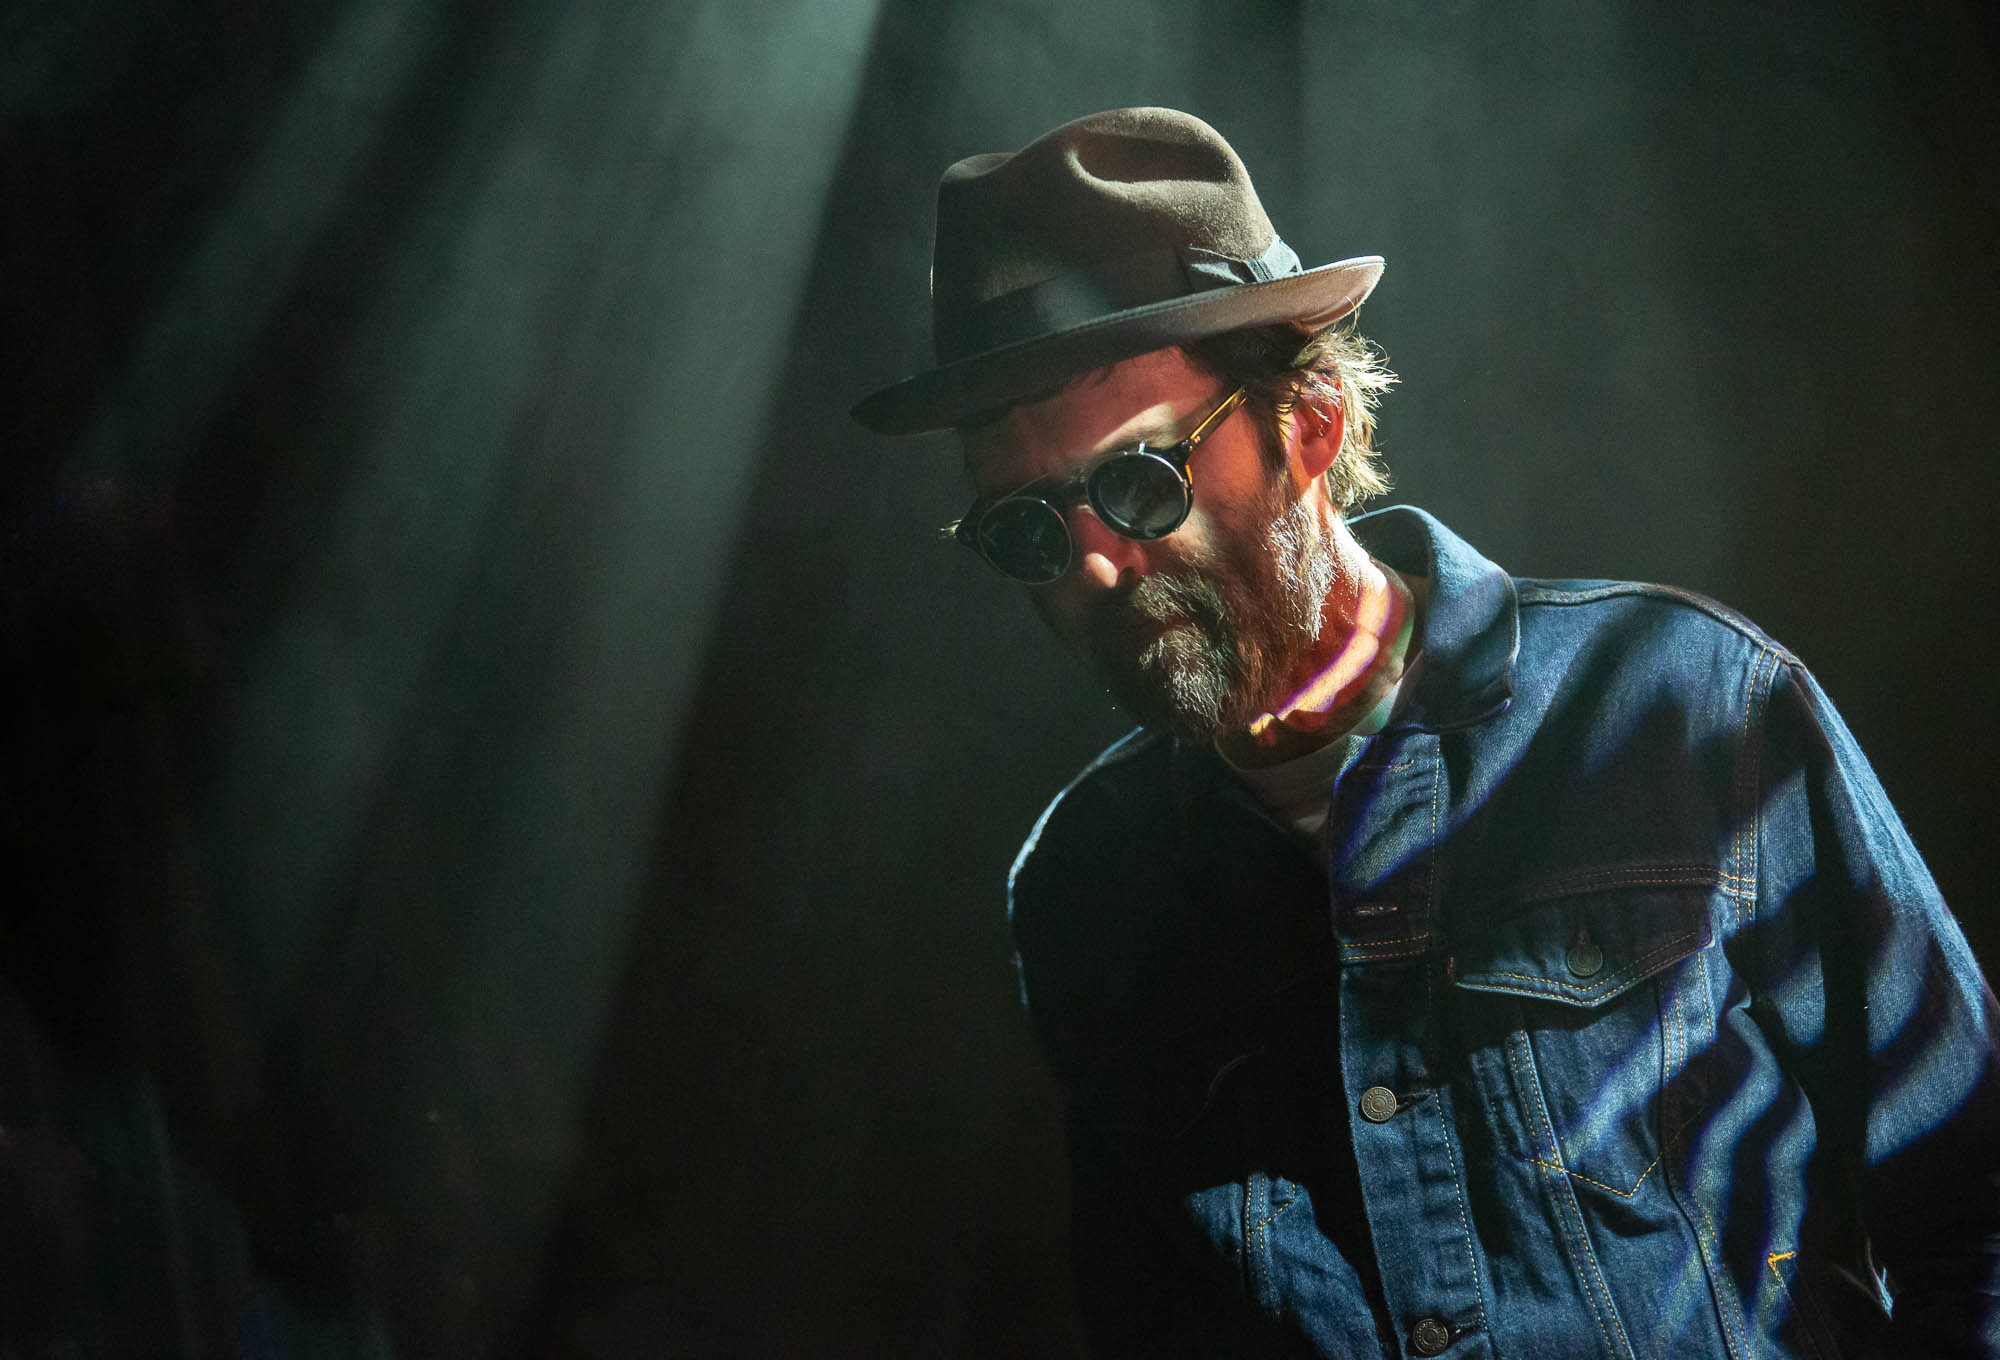 EELS at Irving Plaza on Wednesday, May 1, 2019.